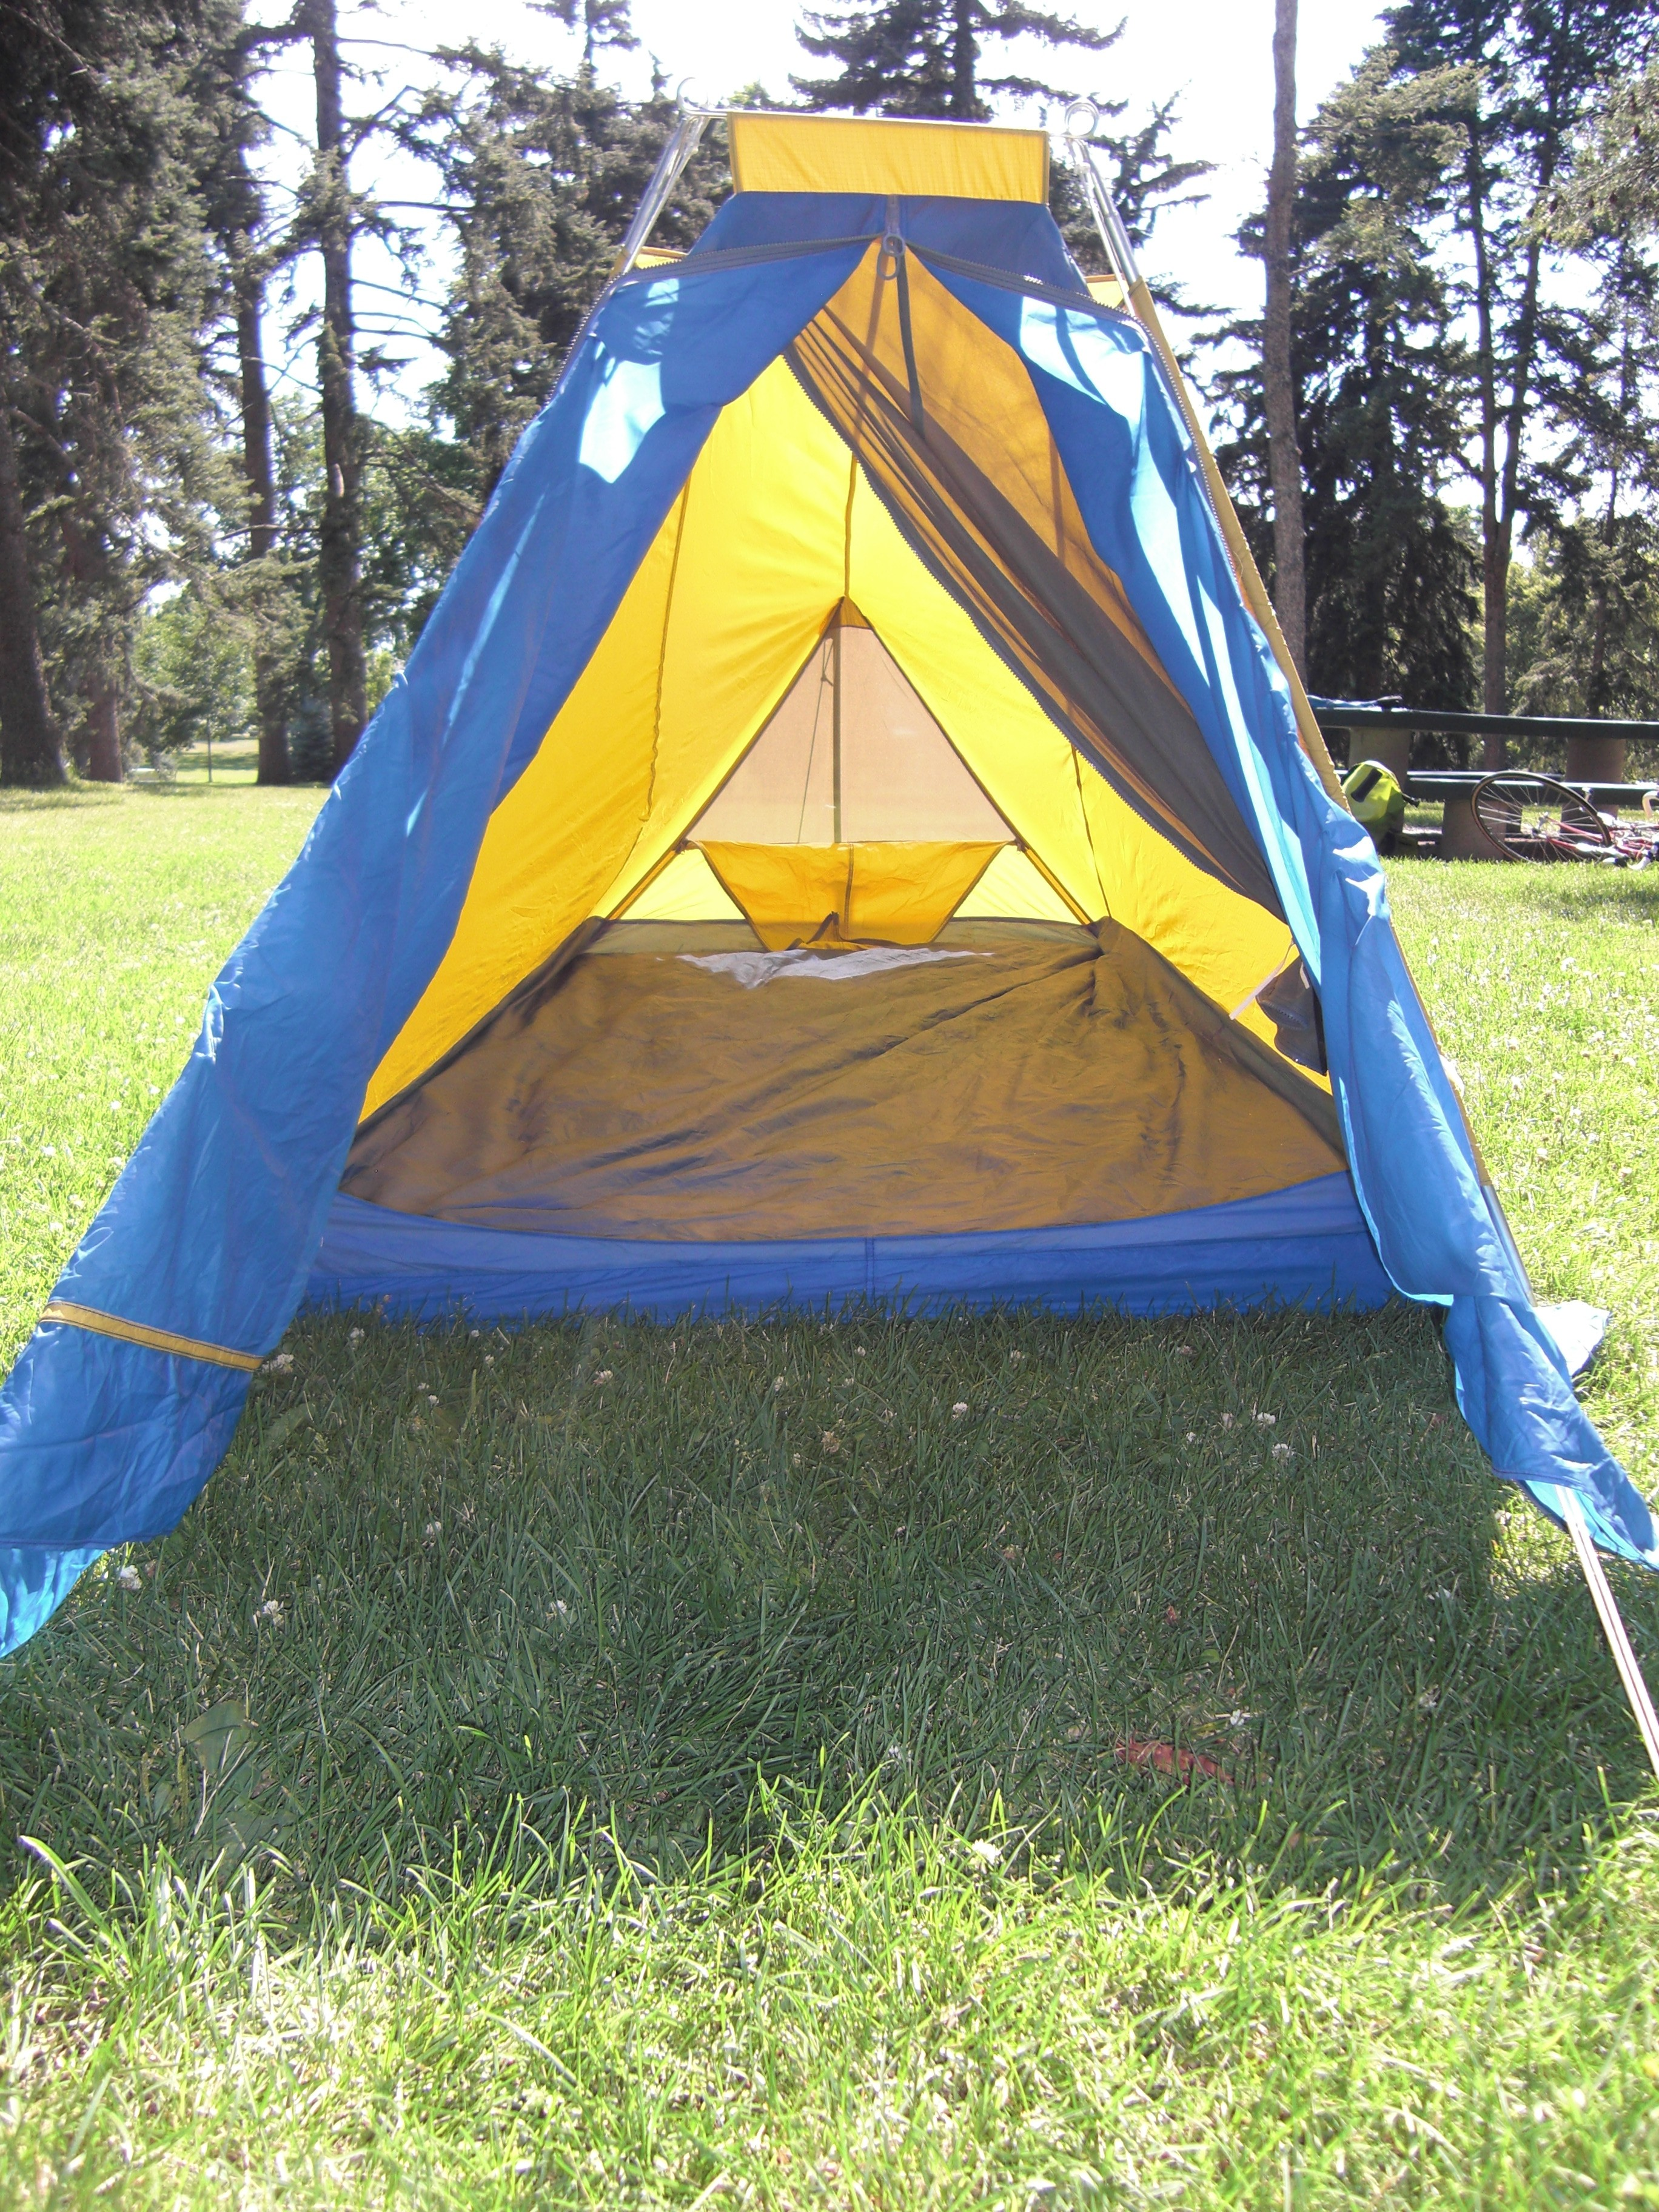 Gerry Single Wall Two Man Backpacking Tent Basecamp Vintage